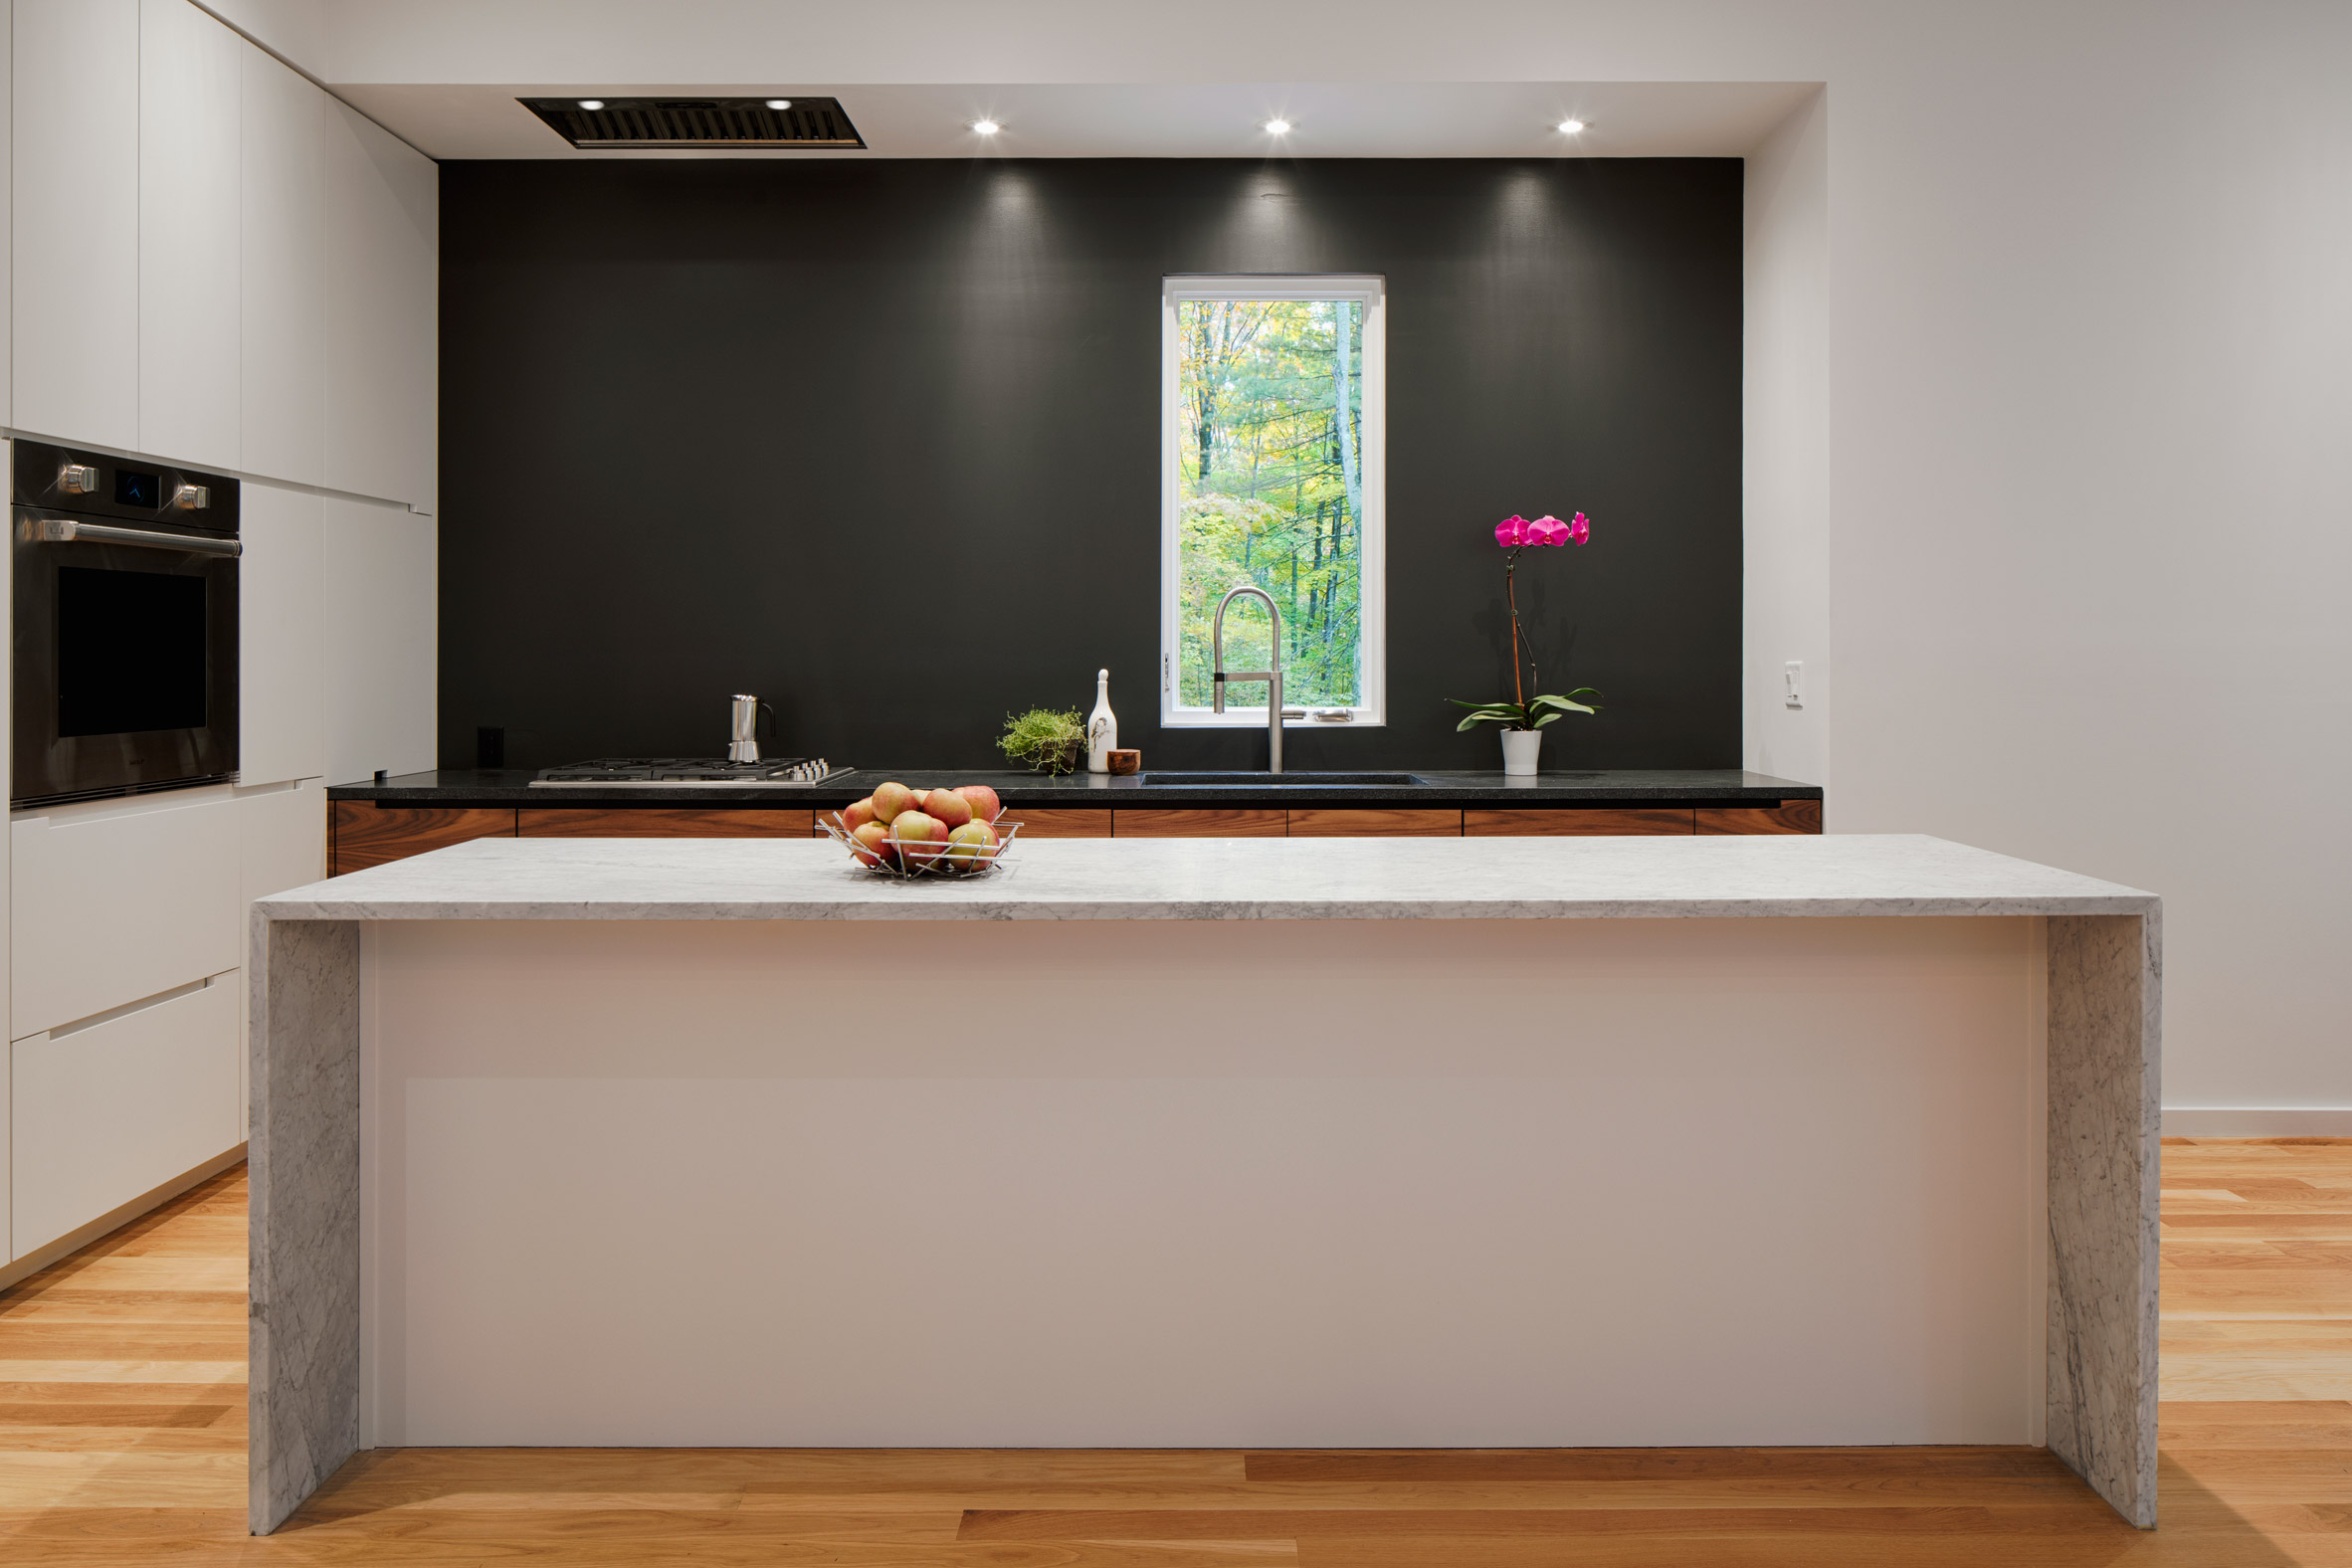 Simplicity and minimalism are two features that look laconc and stylish